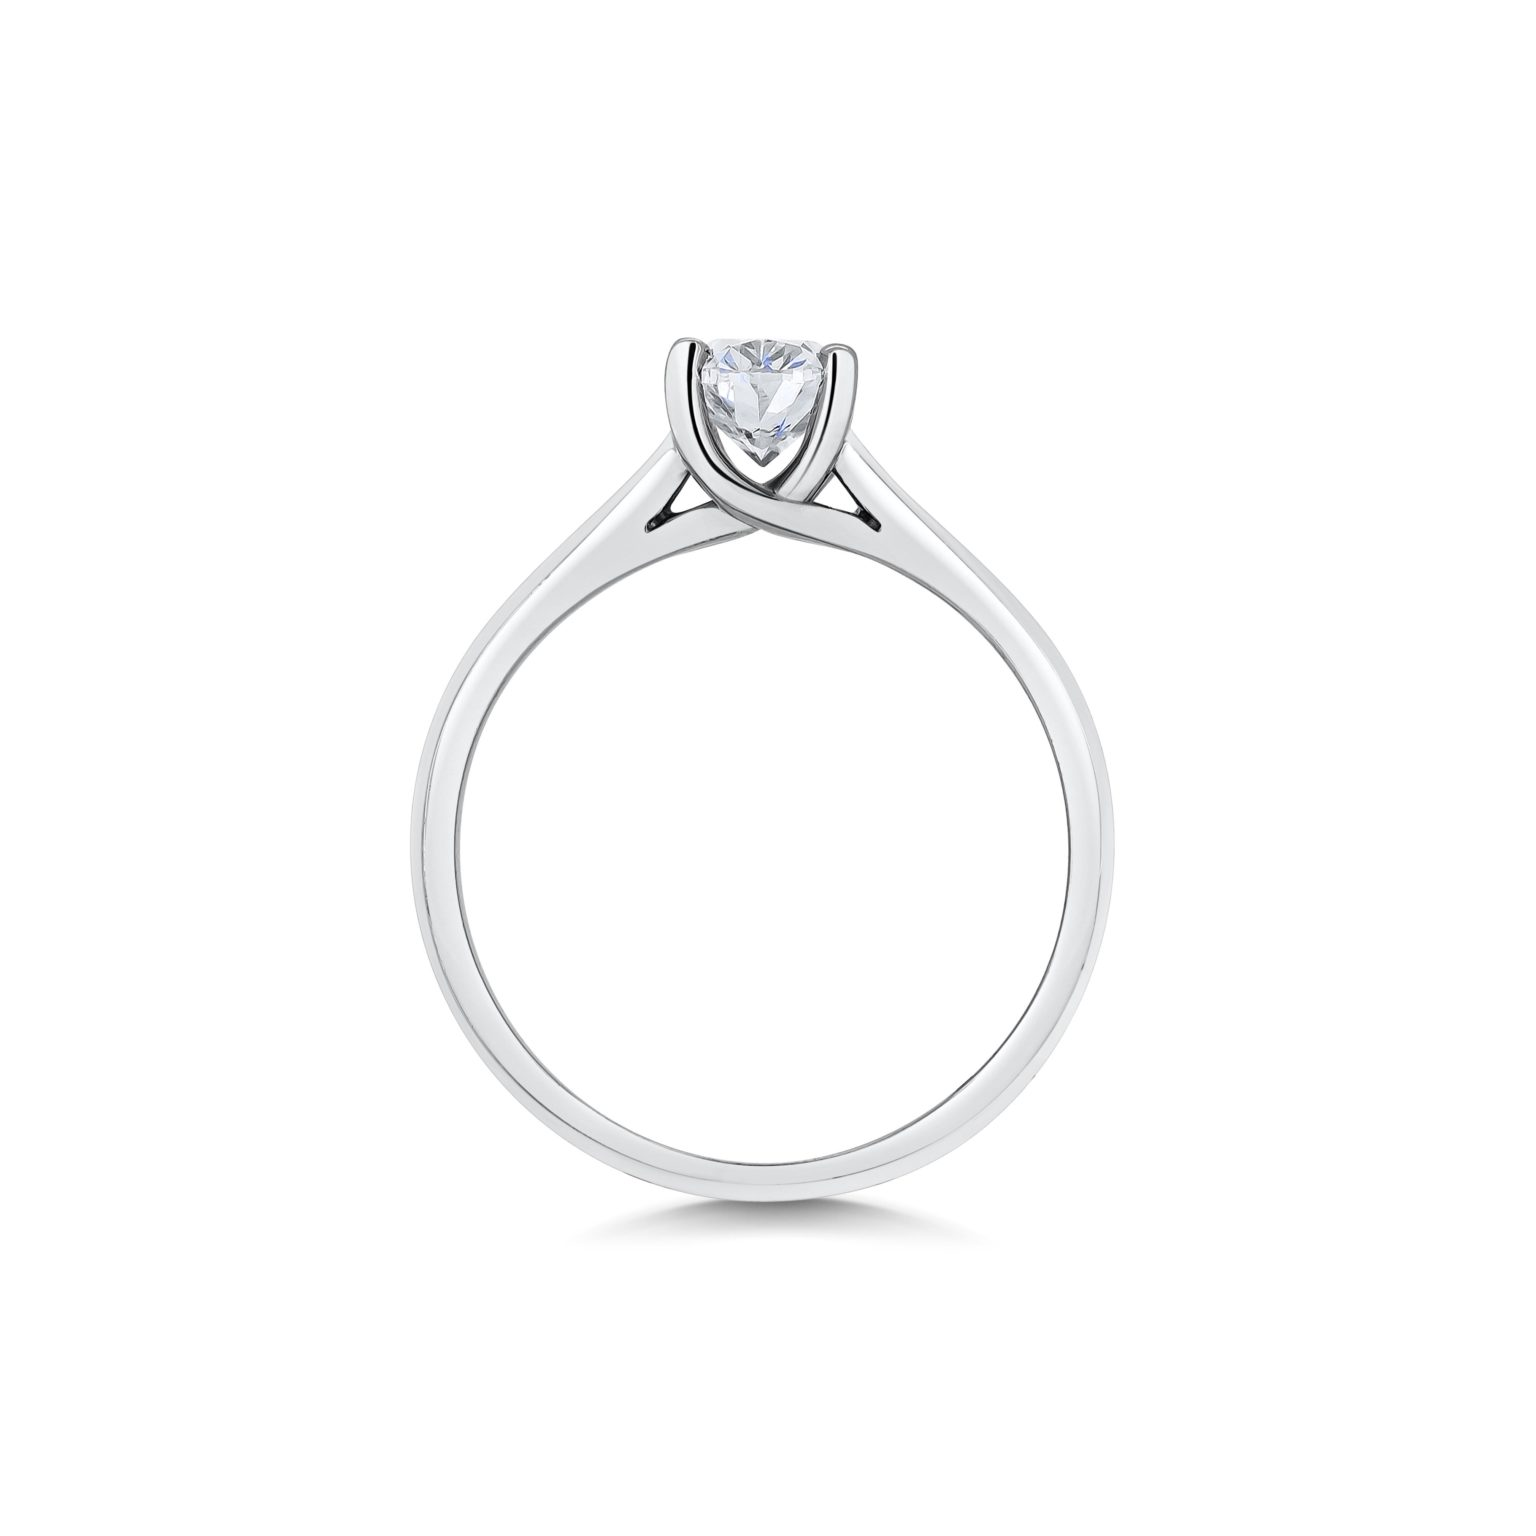 Anna Oval Cut Diamond Solitaire Engagement Ring Side View